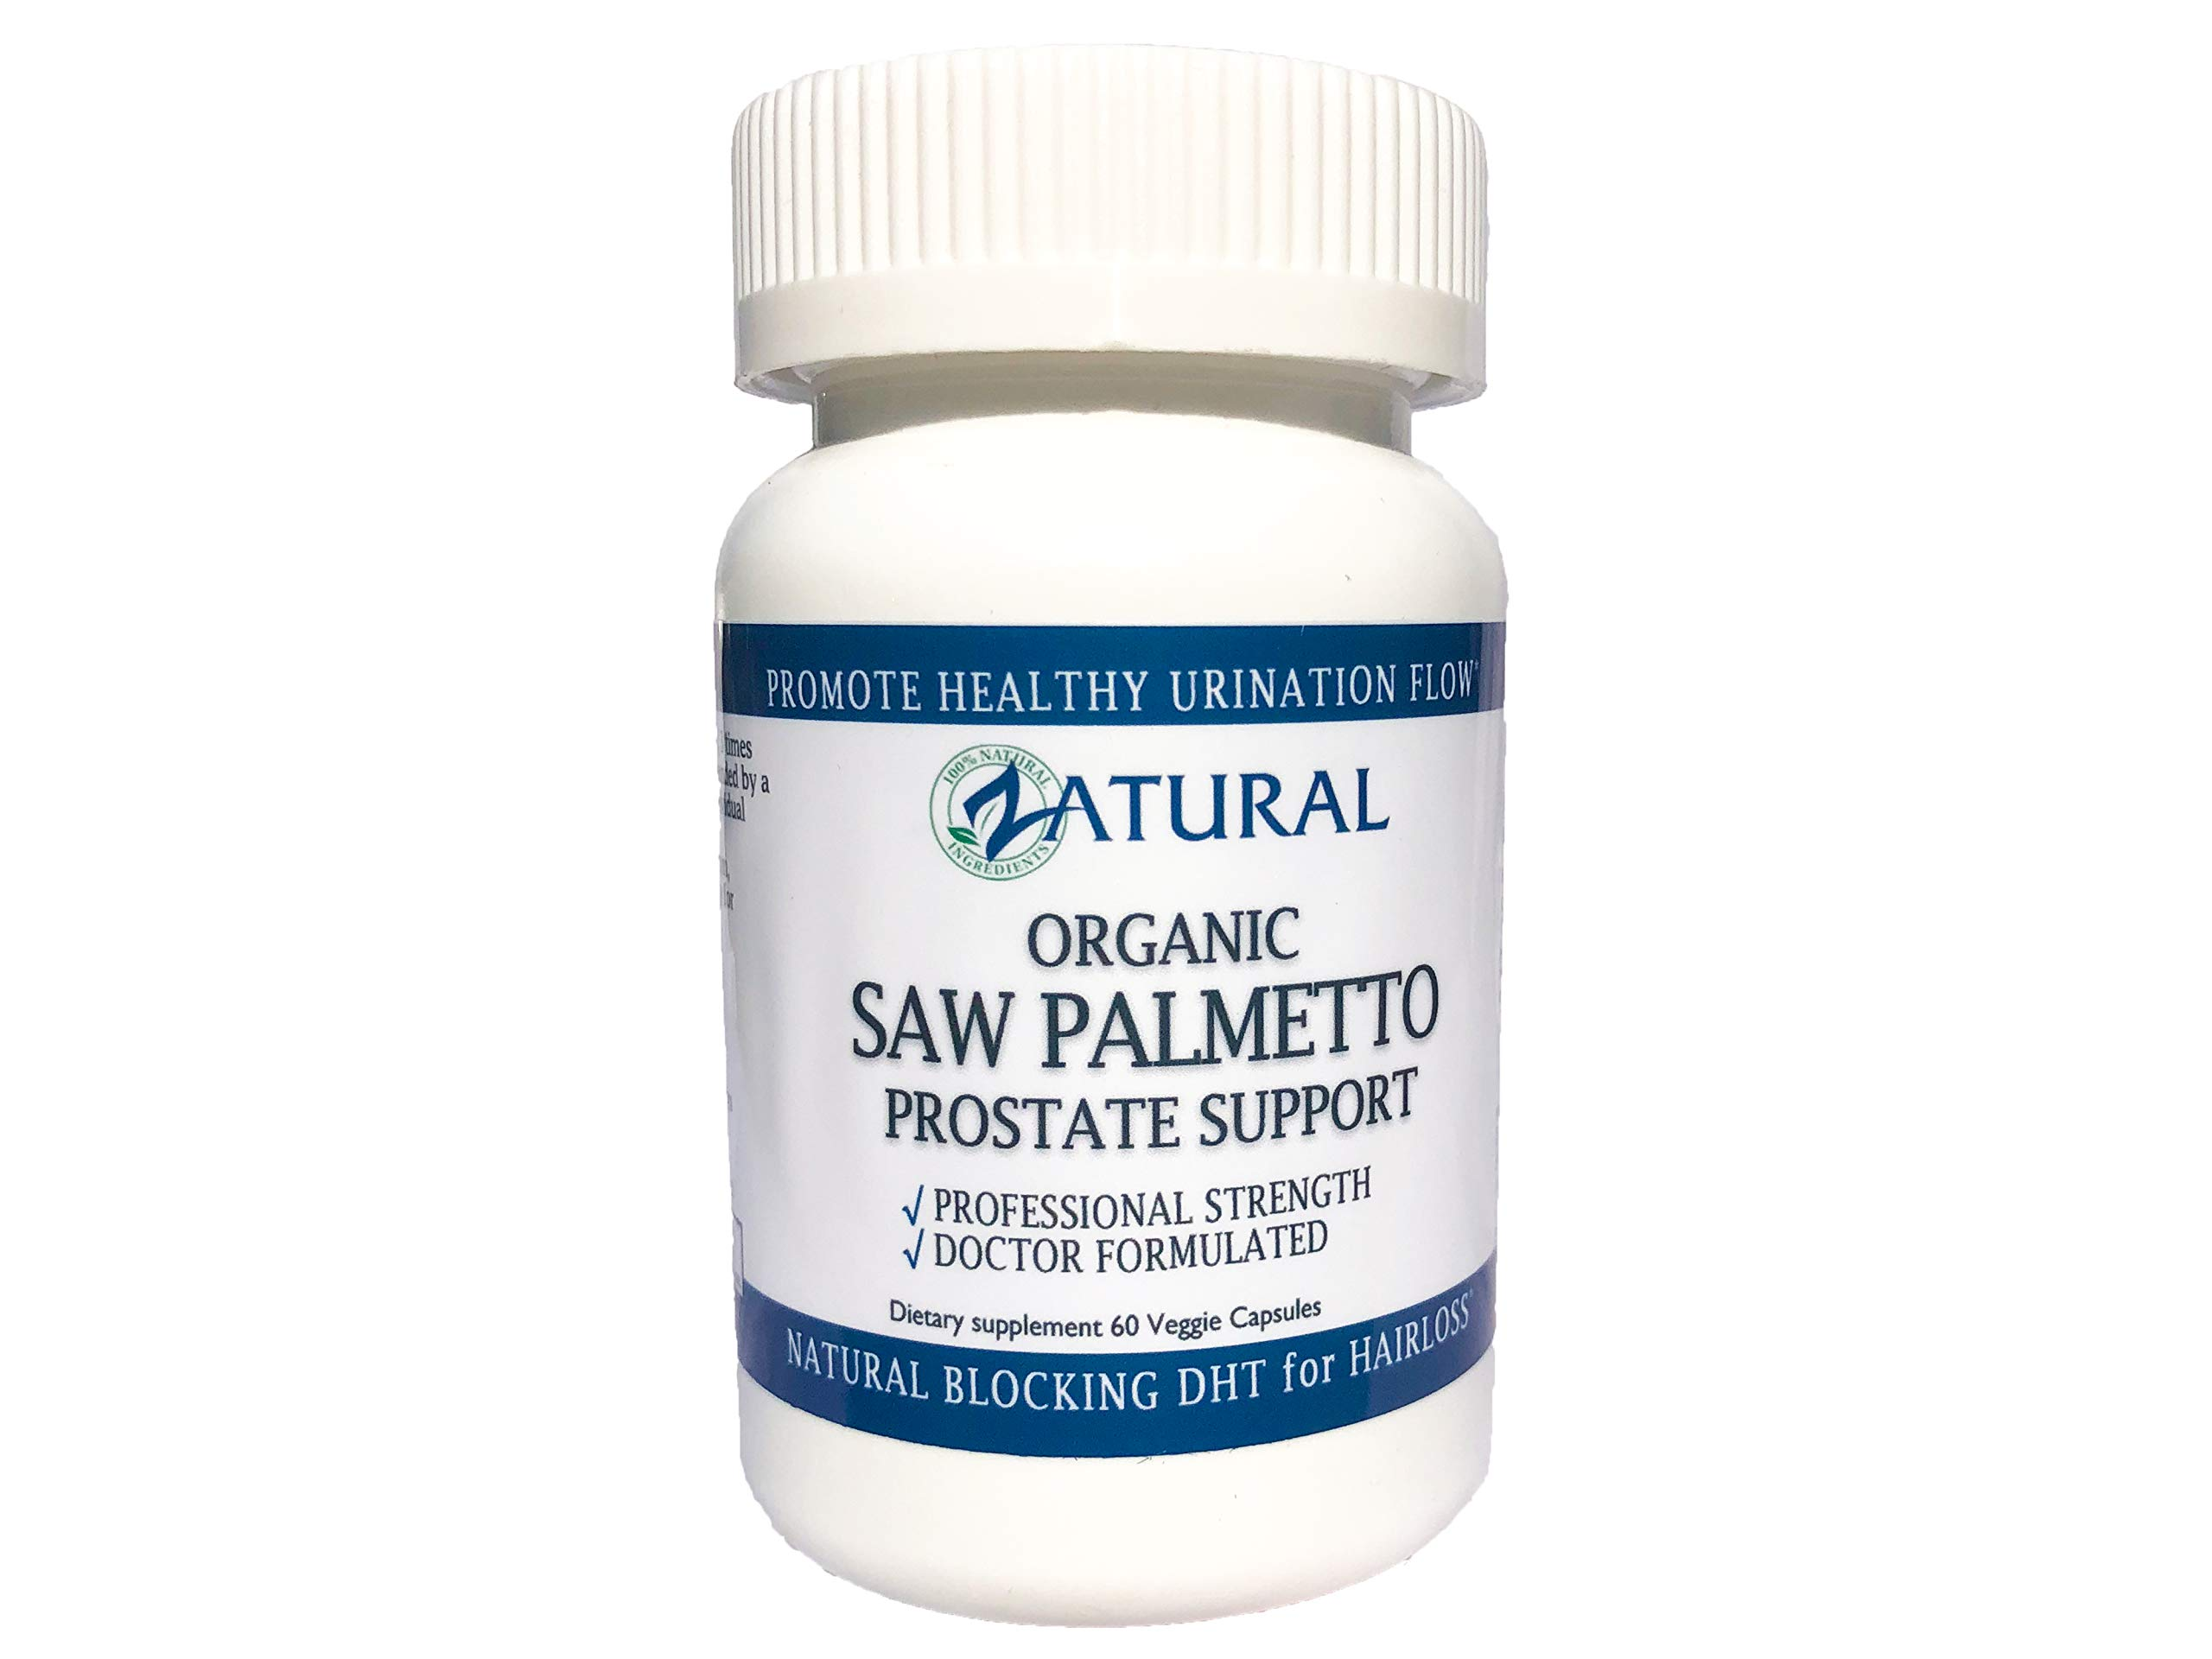 Organic Saw Palmetto Prostate Complex_Promote Healthy Urination Frequency & Flow_Naturally Blocking DHT_Professional Grade_905mg per Serving (1)